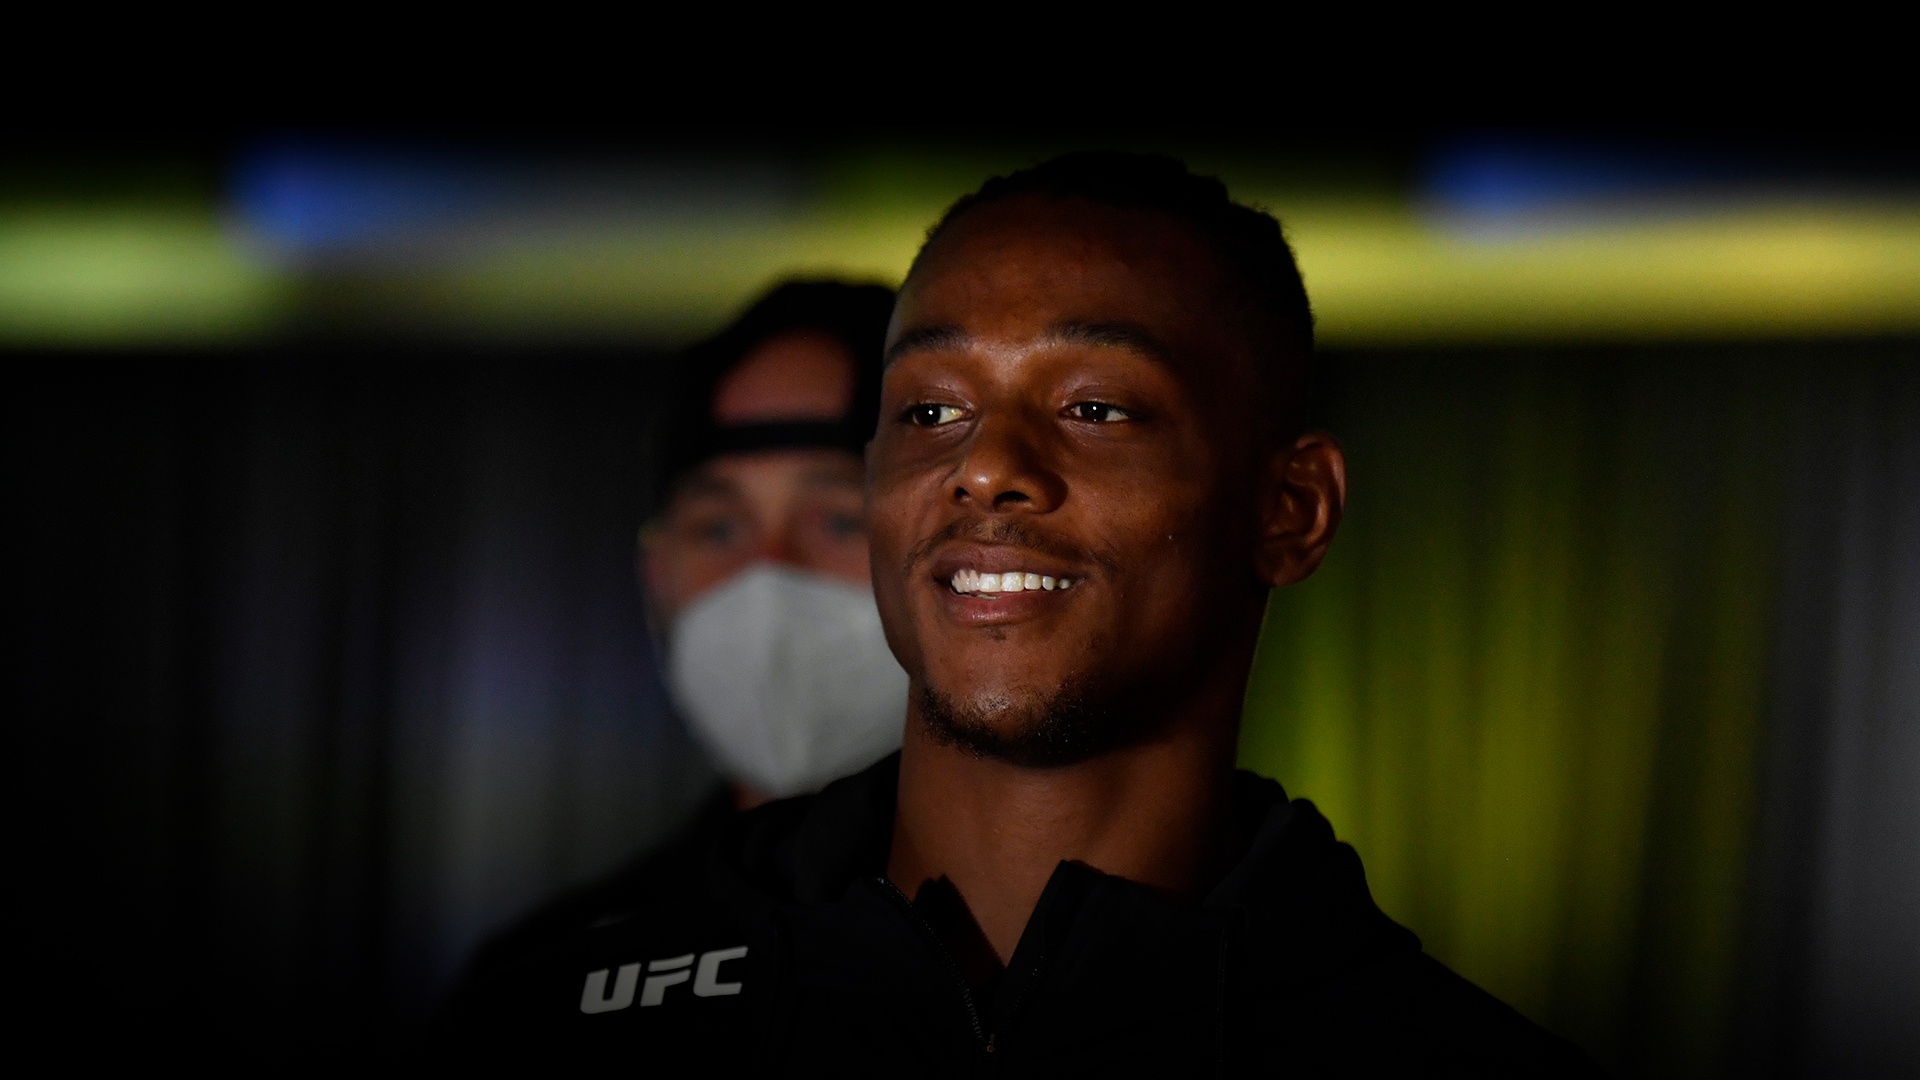 Jamahal Hill prepares to fight Klidson Abreu of Brazil in their light heavyweight fight during the UFC Fight Night event at UFC APEX on May 30, 2020 in Las Vegas, Nevada. (Photo by Jeff Bottari/Zuffa LLC)